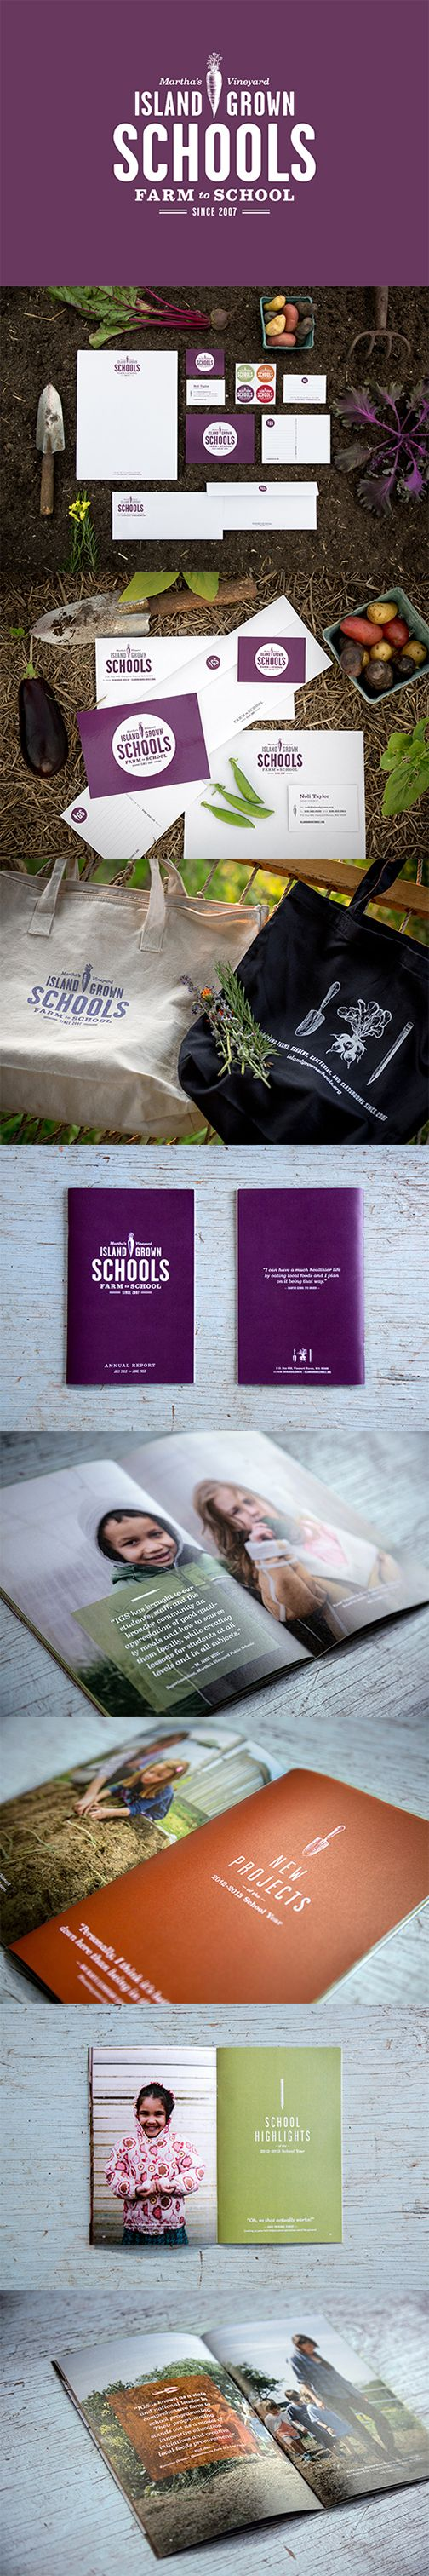 Great idea farm school #identity #packaging #branding PD